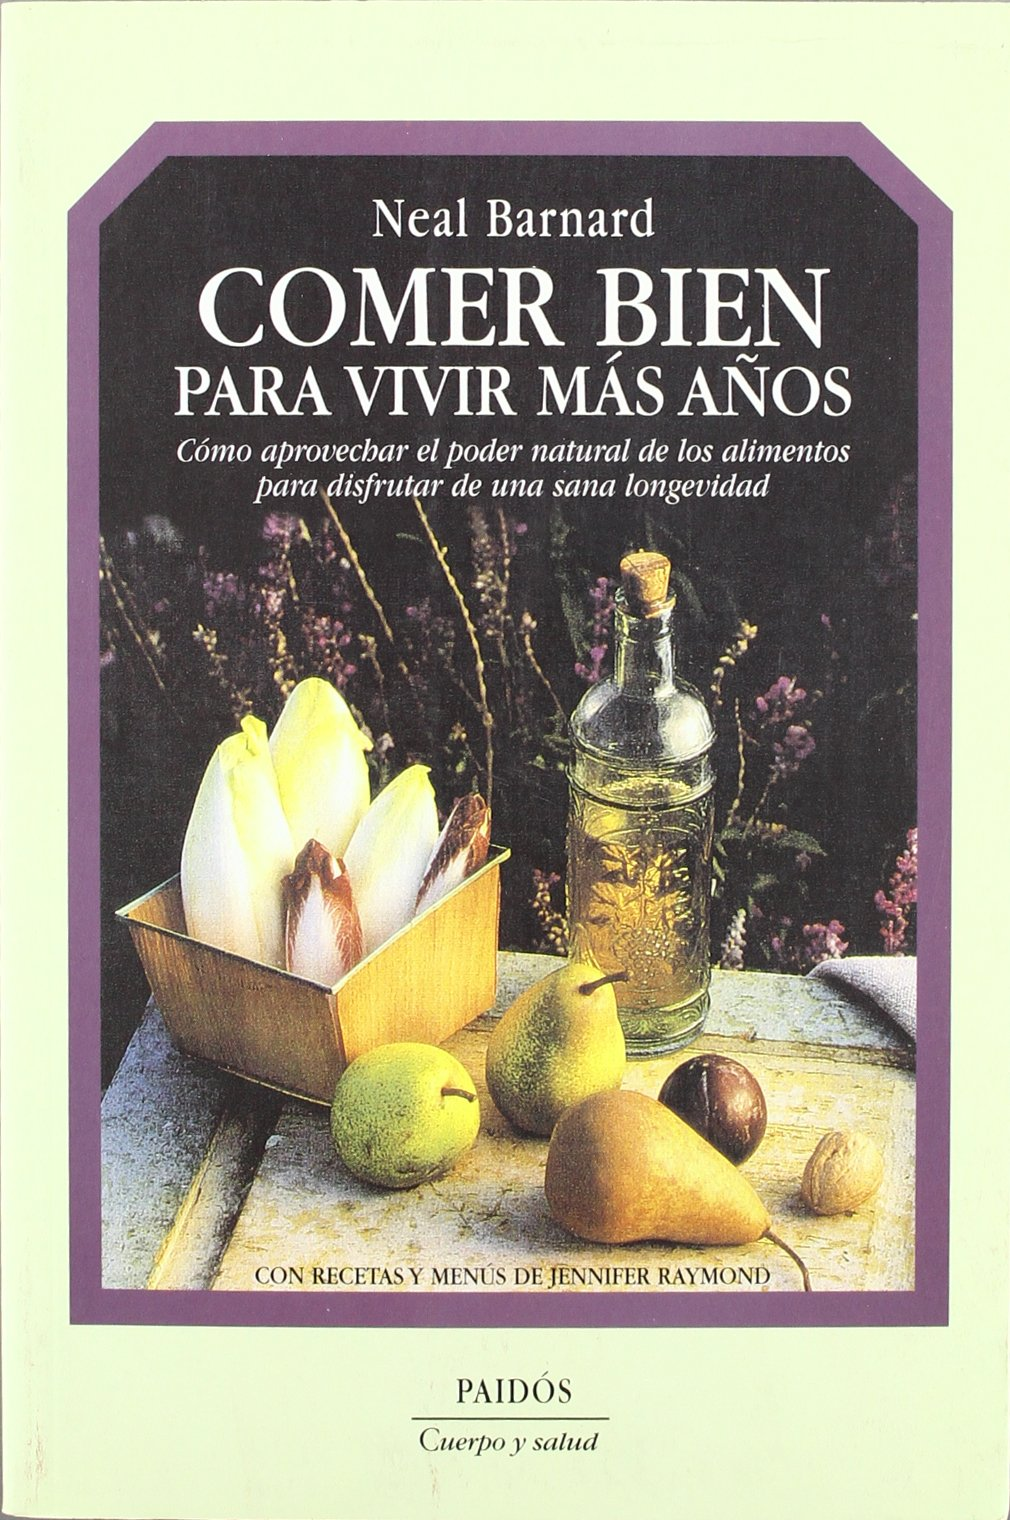 Comer bien para vivir mas anos / Eat Well to Live More Years (Spanish Edition): Neal D. Barnard: 9788449304866: Amazon.com: Books